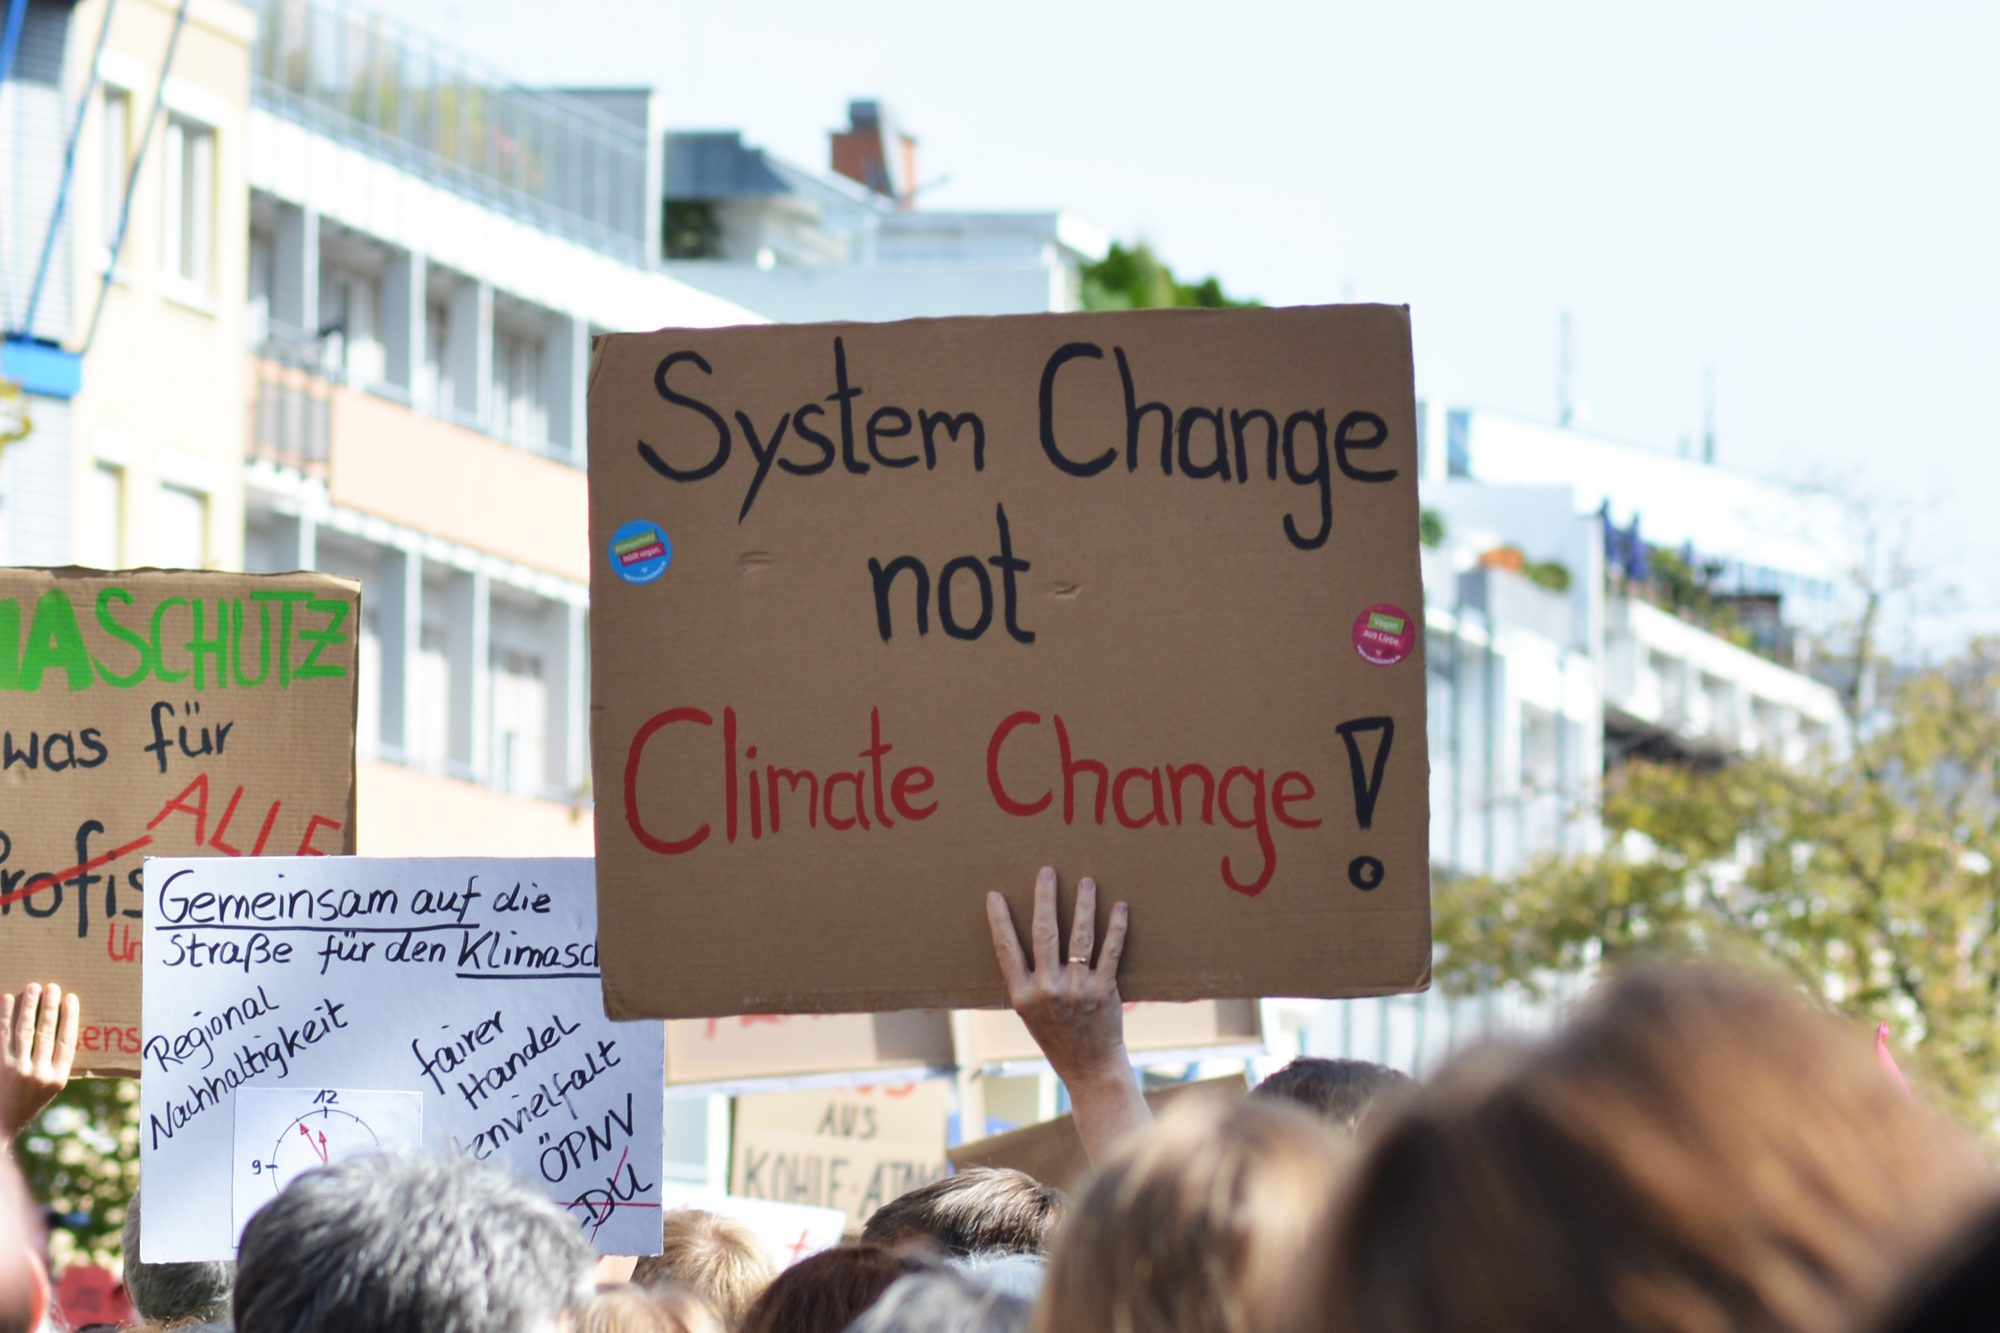 climate science, pollution